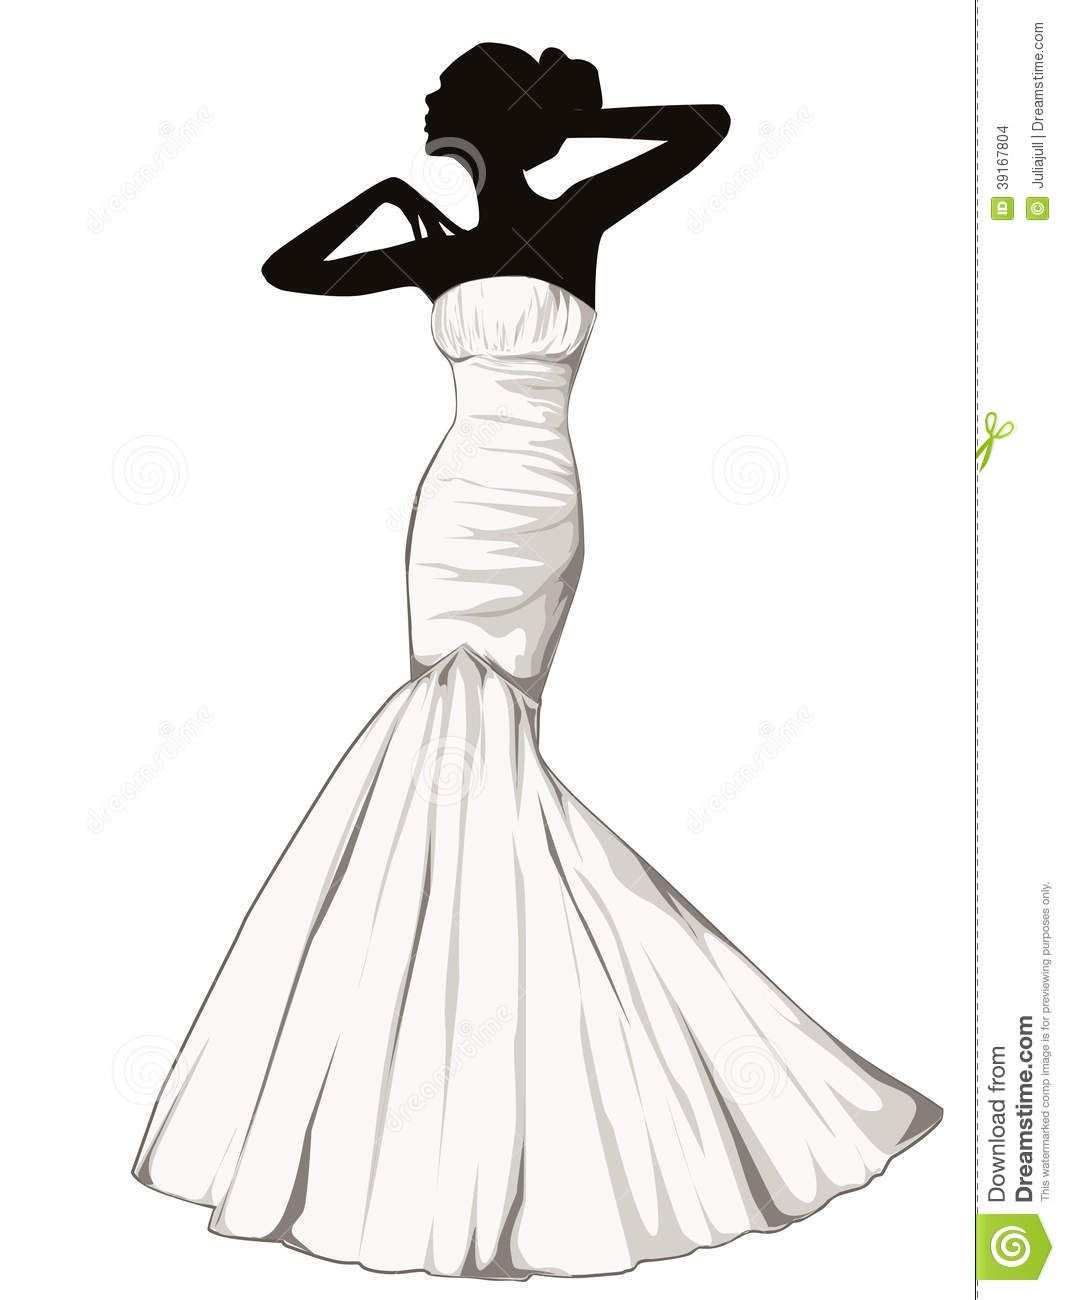 dress silhouettes | ... stock images of ` Silhouette of elegant girl ...